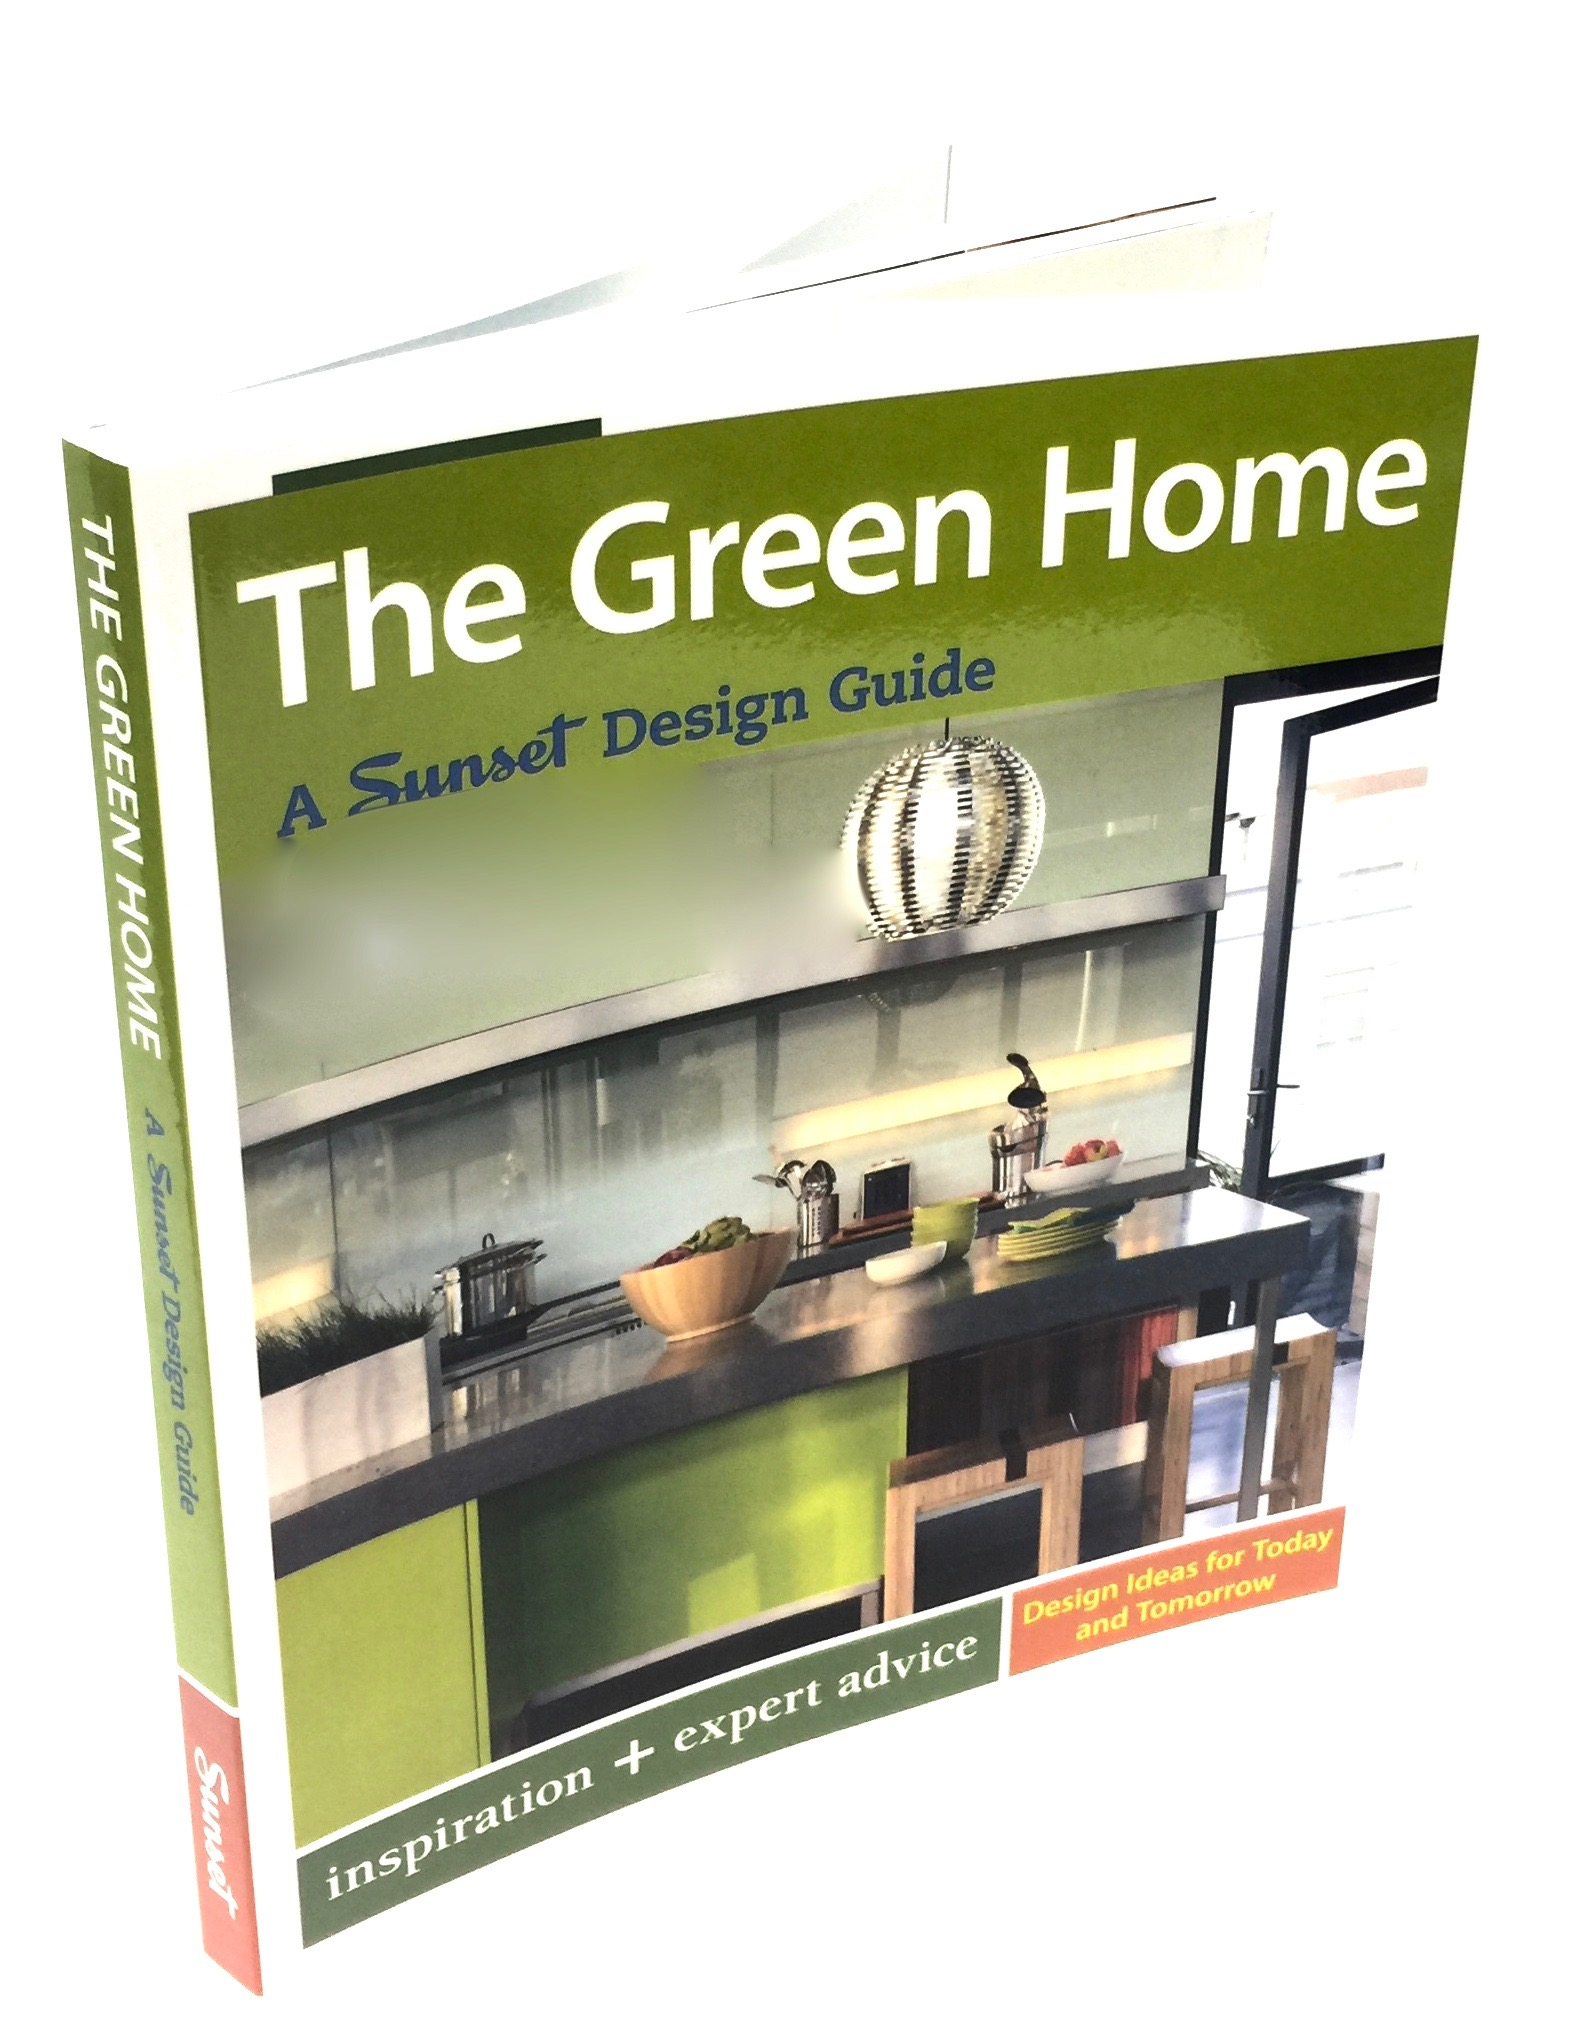 green home design guide wp1478551534 2 20 toys housewares